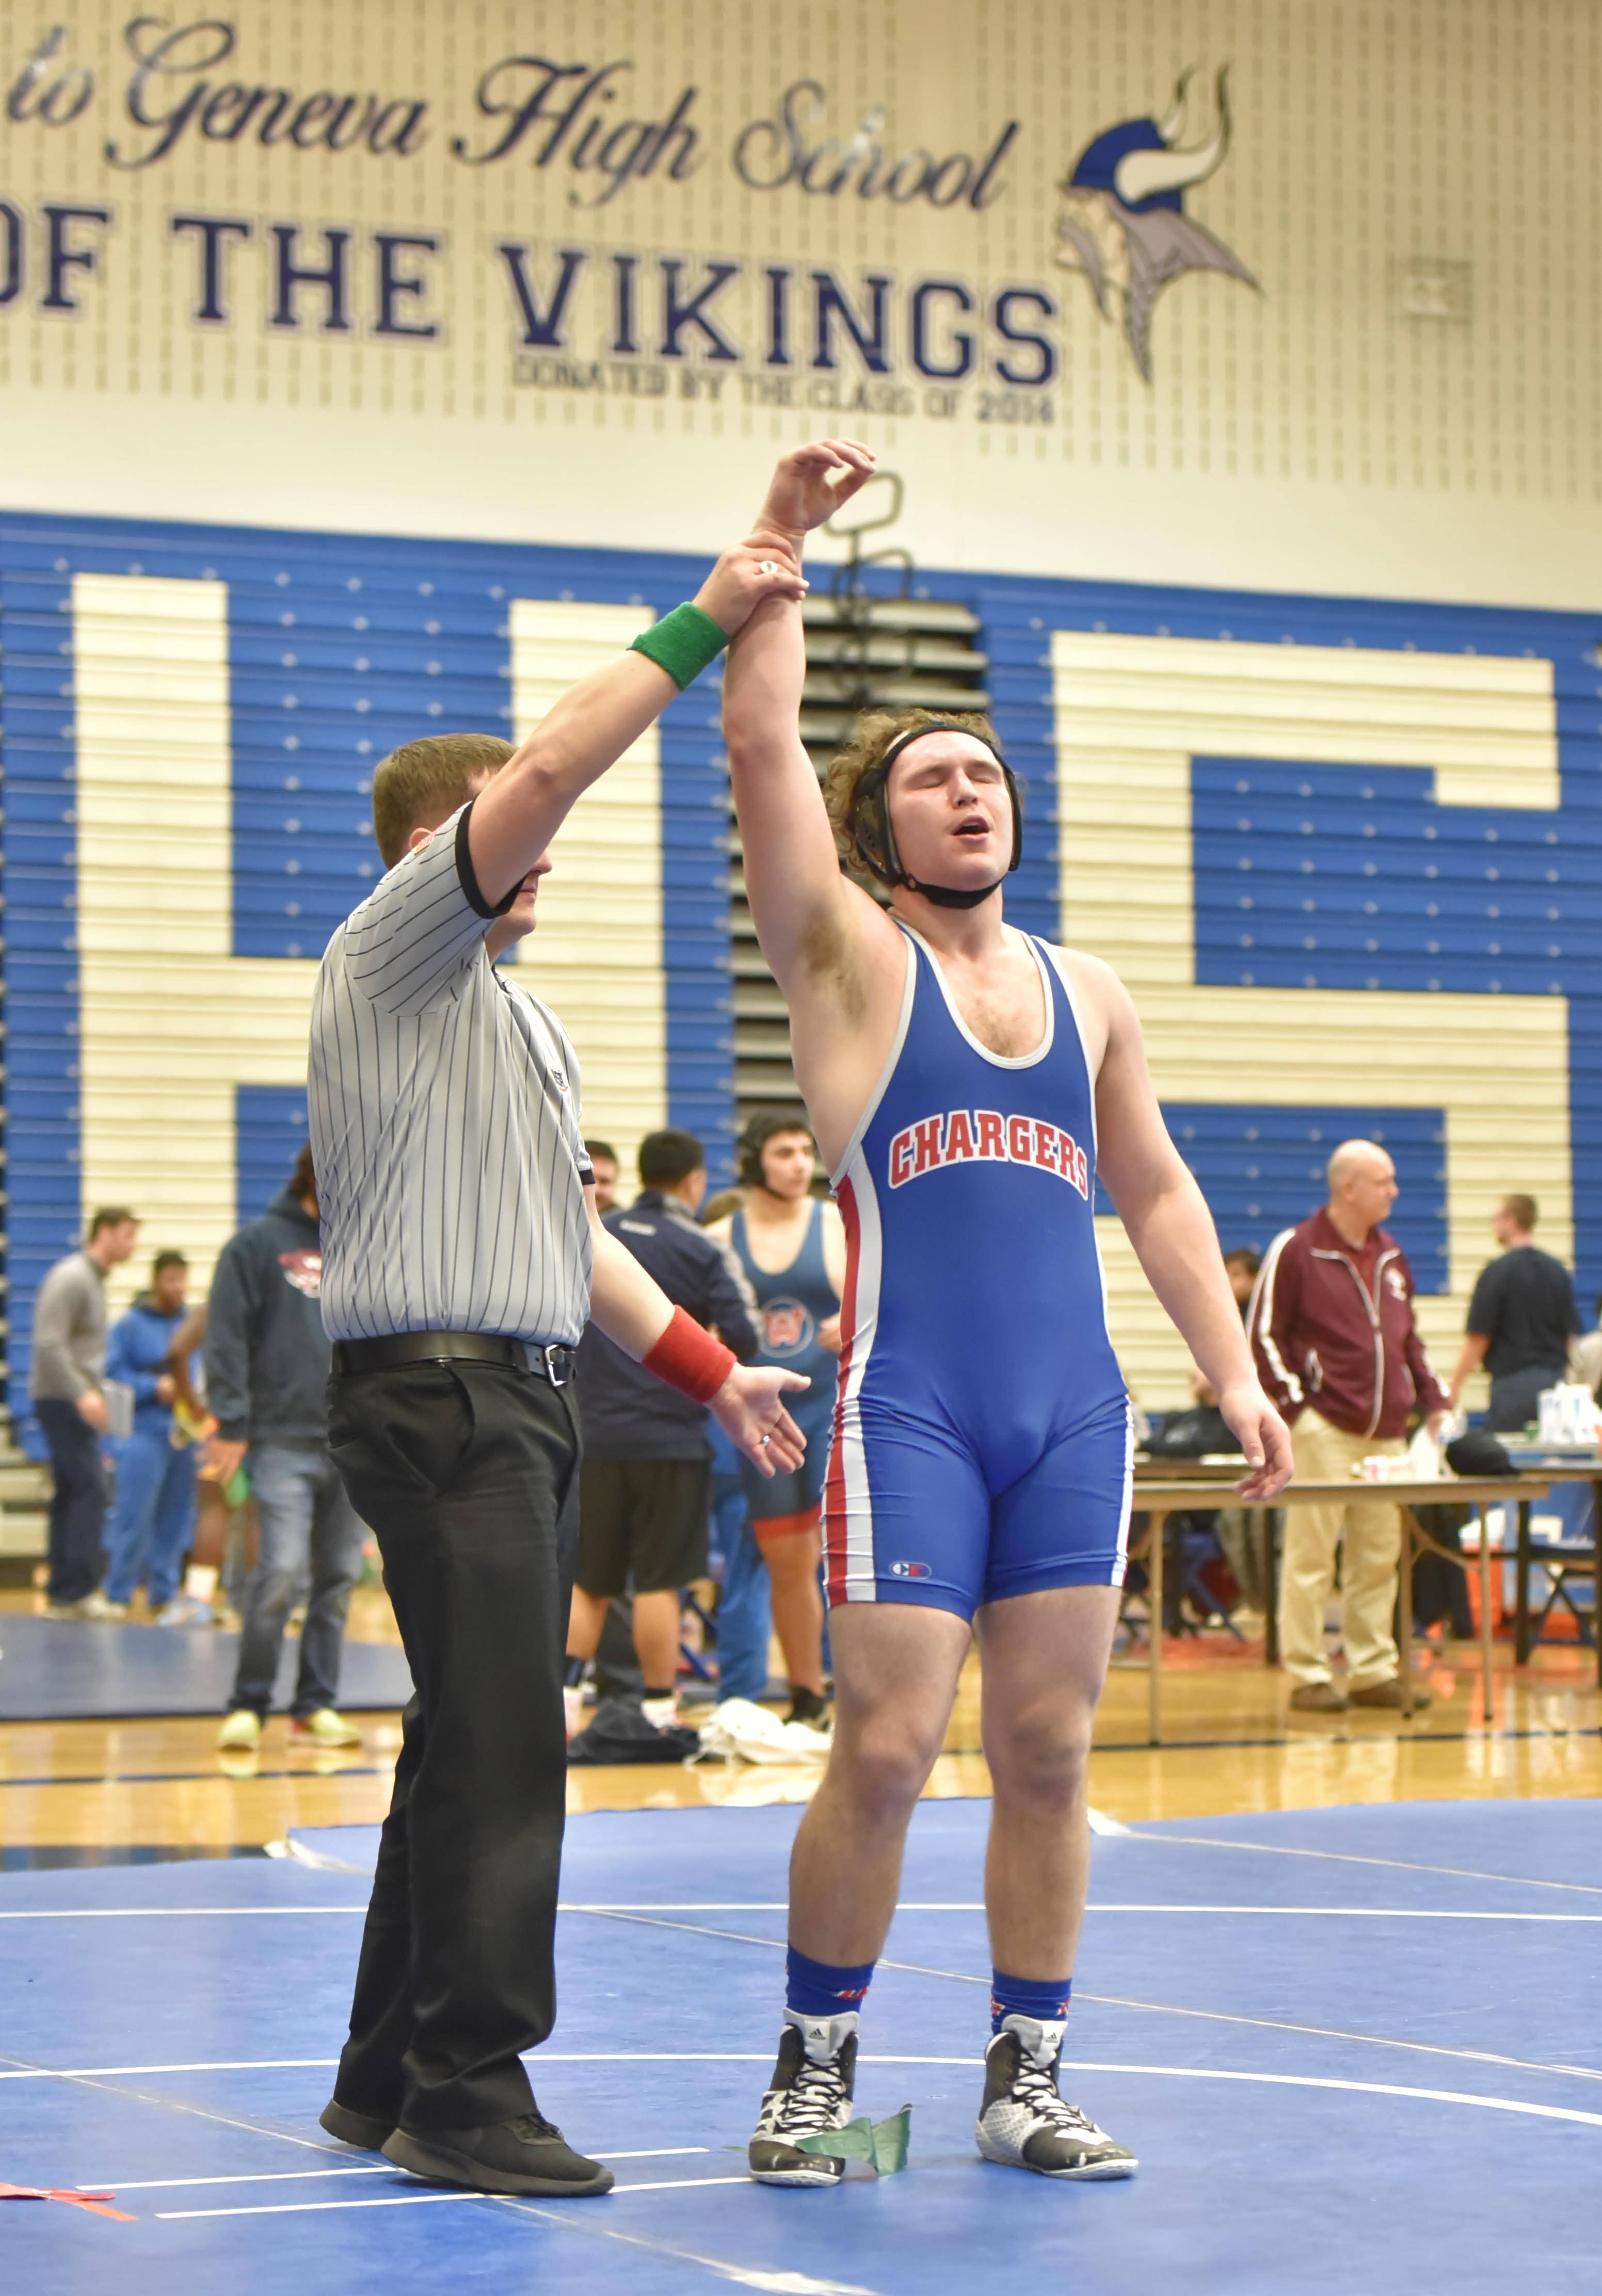 Dundee-Crown's Carter Fitch is declared the winner over Stillman Valley's Logan Jennings in their 195-pound bout.